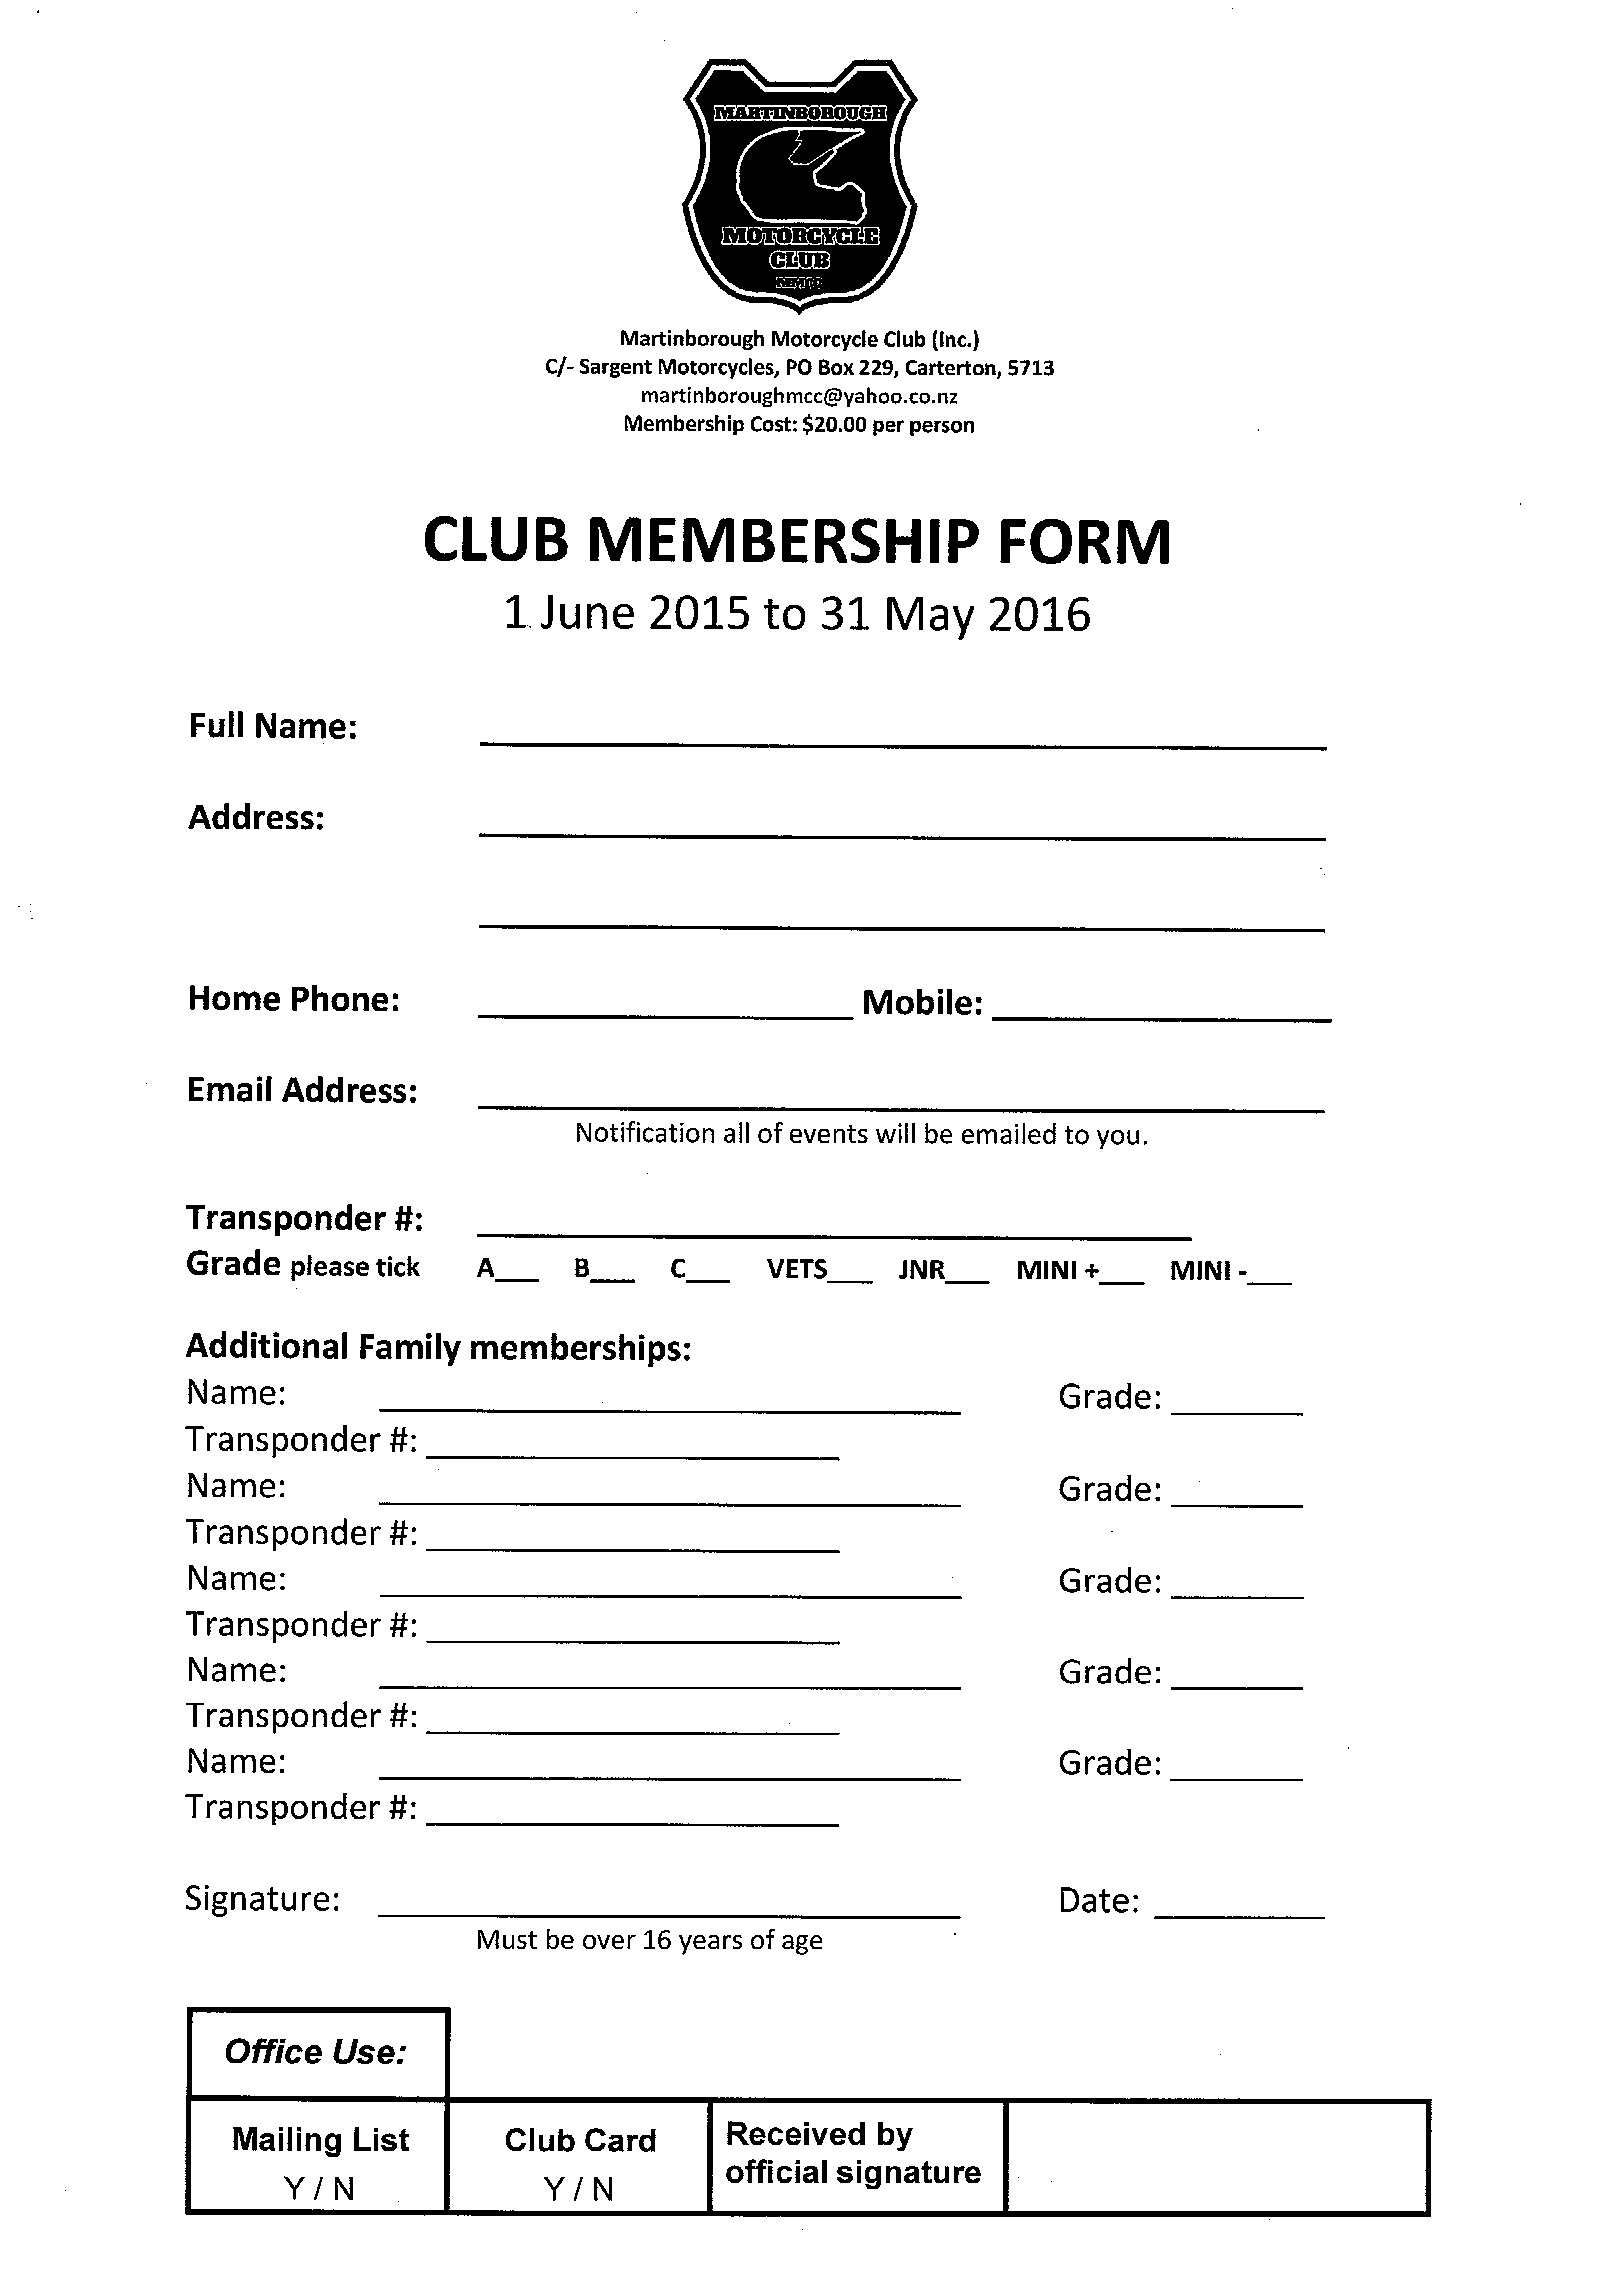 mmx-membersHip-form